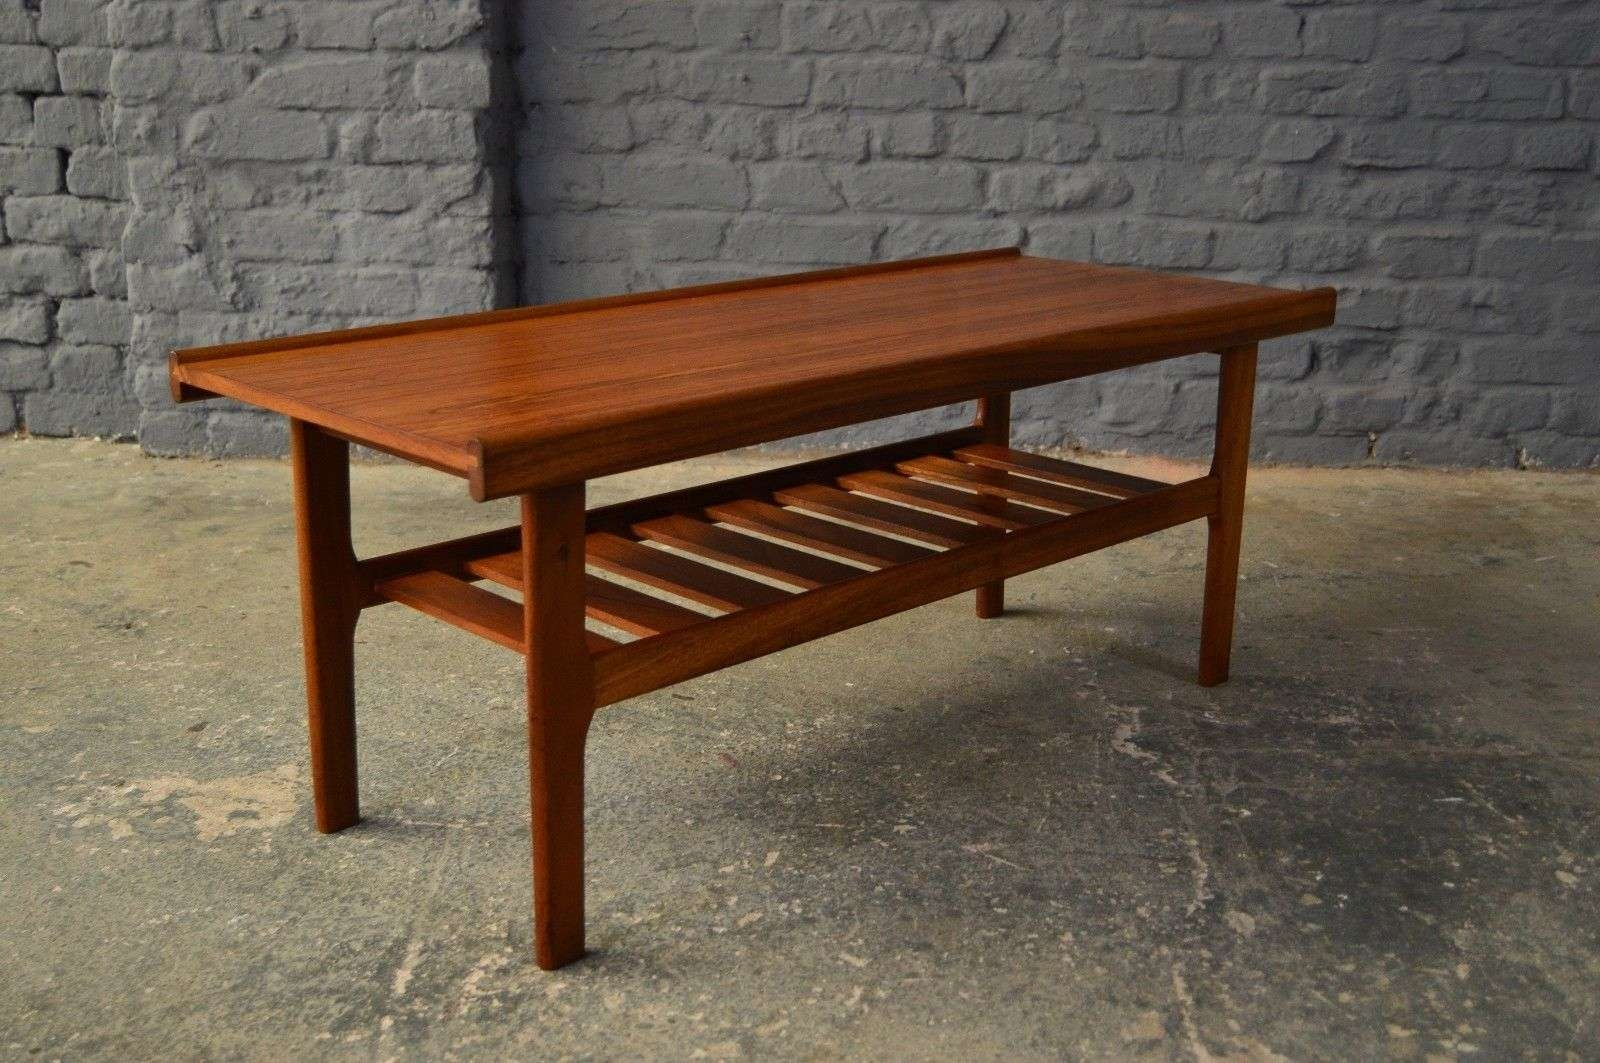 Retro Vintage Mid Century Teak Coffee Table Magazine Rack Danish Intended For Current Coffee Tables With Magazine Rack (View 10 of 20)